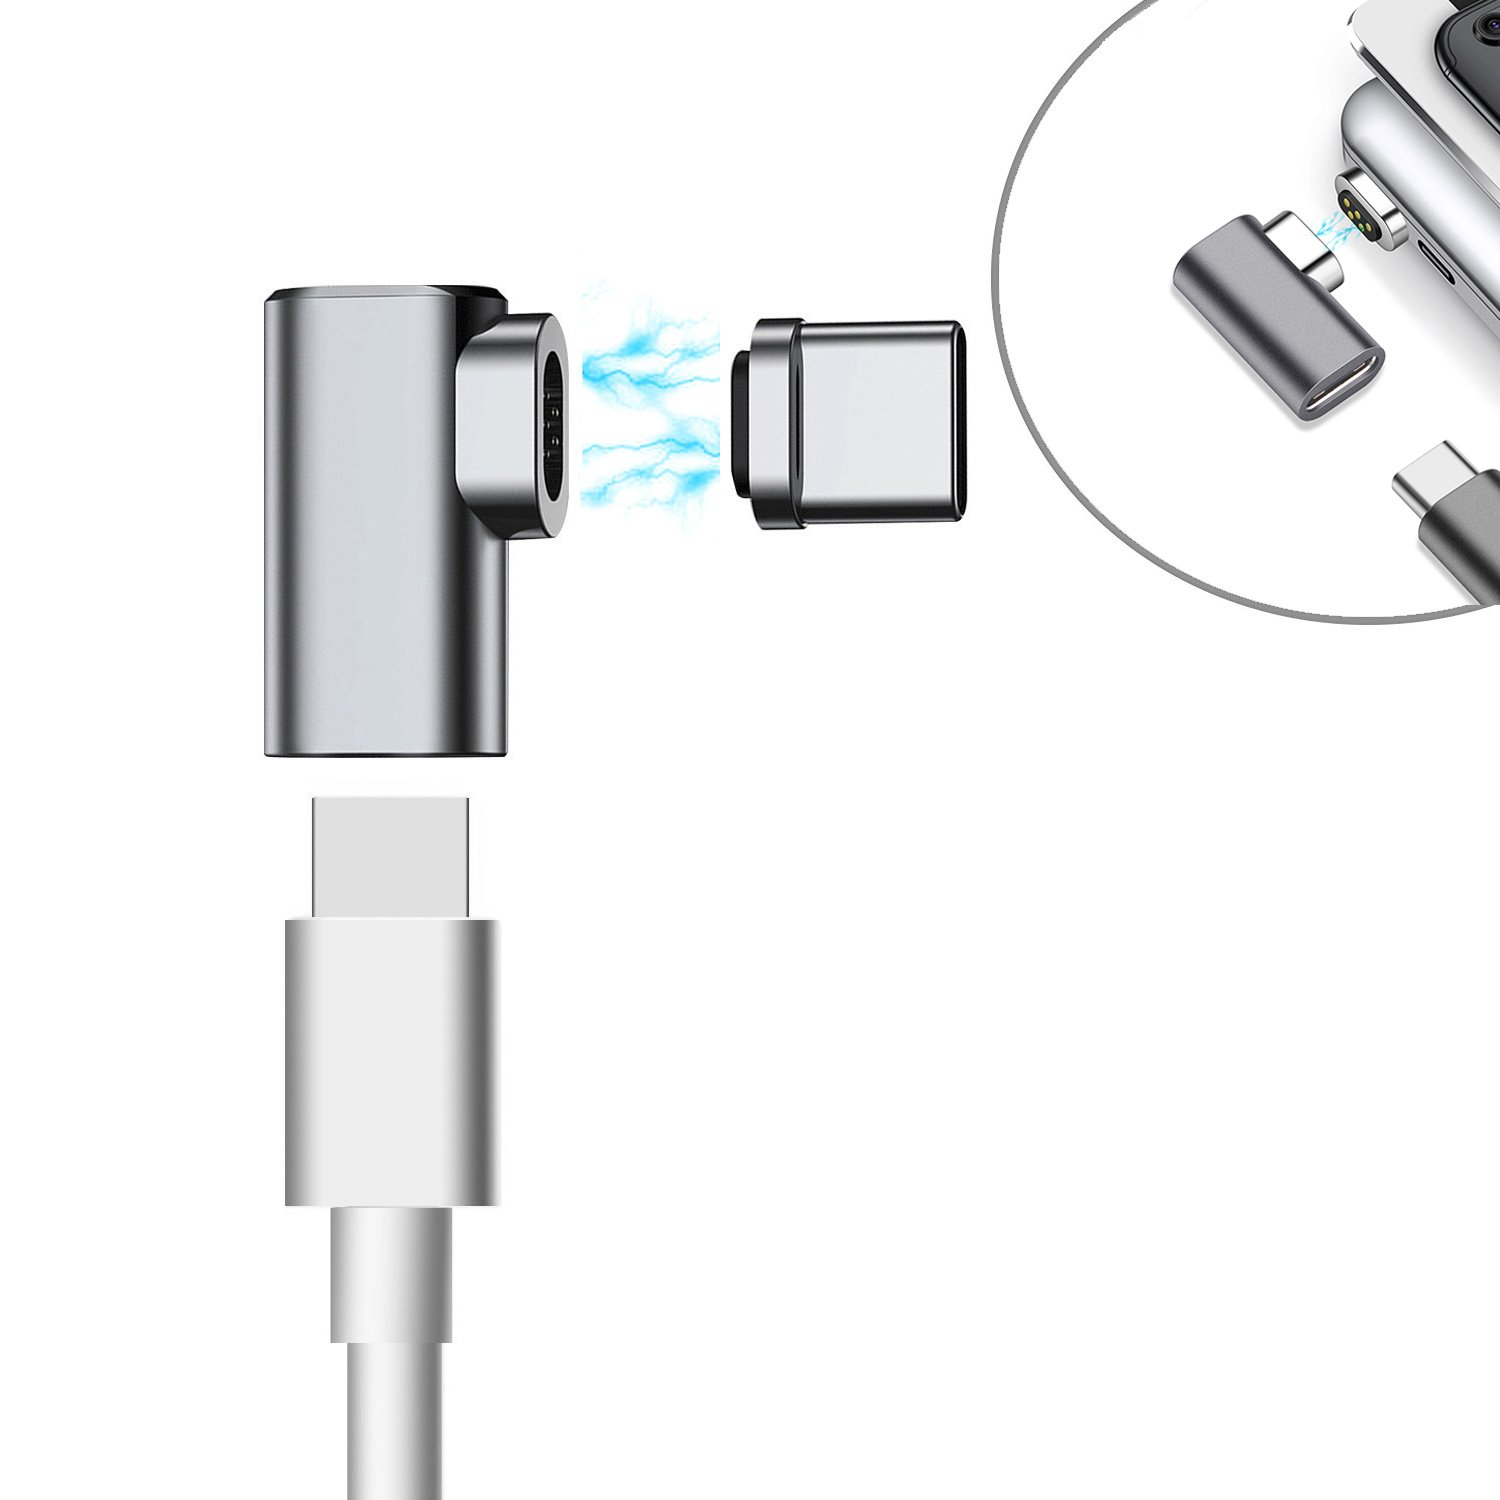 Dreamvasion Magnetic USB C Charger Adapter, 90 Degree Magnet USB Type C Fast Charging Connector Converter [Support 4.3A] for MacBook Pro/Apple Pencil/Chromebook Pixel/Samsung Galaxy S8 and More